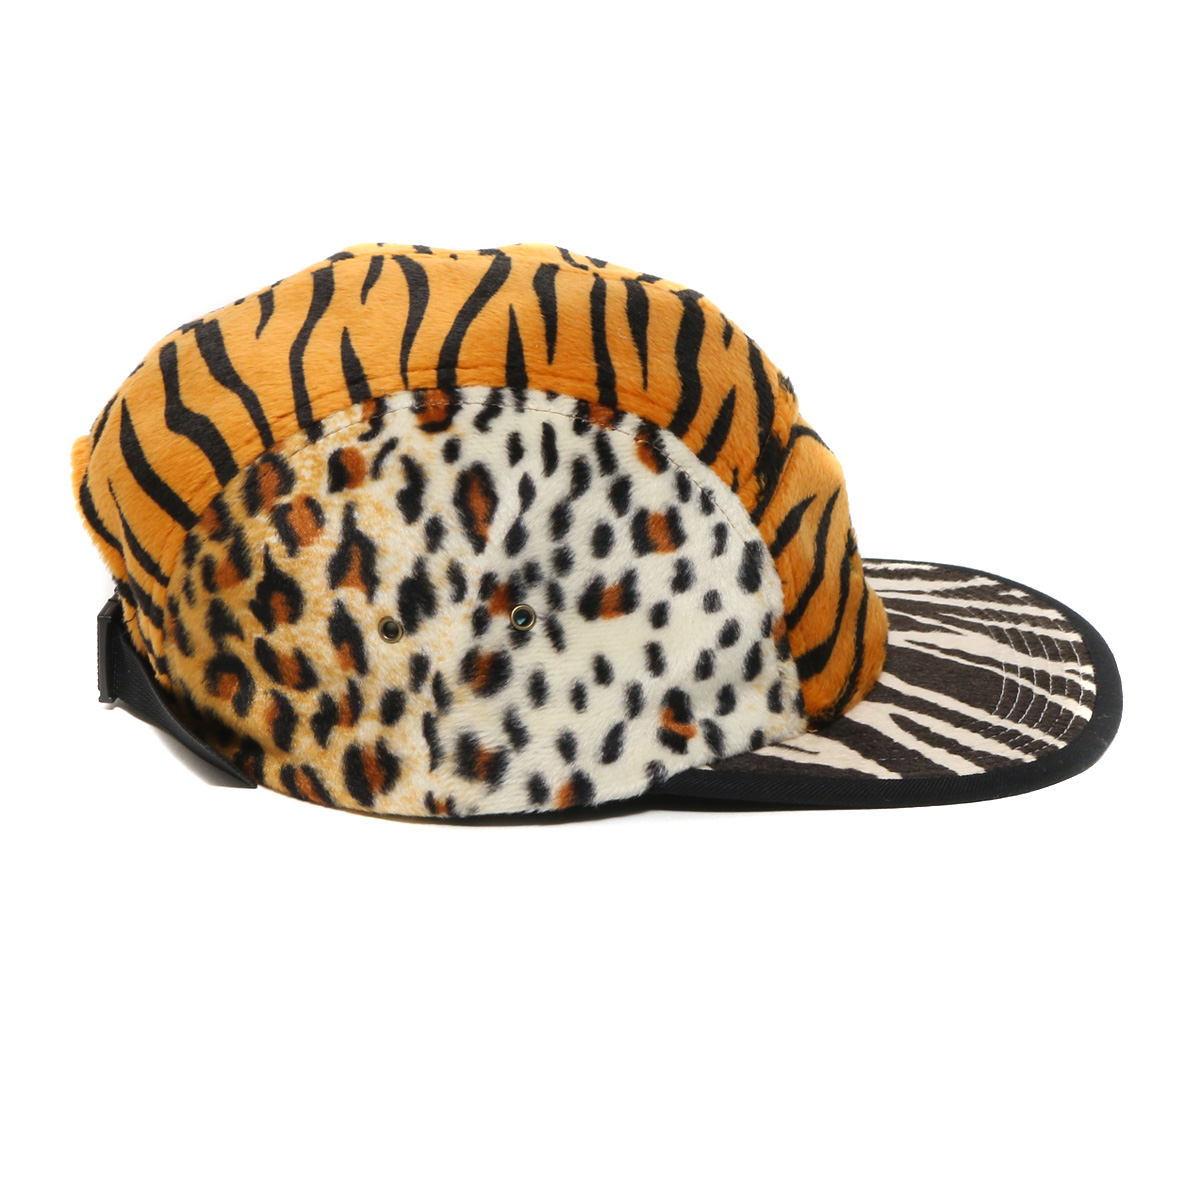 4ee9795ed1c ATMOS LAB CRAZY ANIMAL CAMP CAP (atto- MOS laboratory crazy animal camping  cap) (ANIMAL) 18SP-I